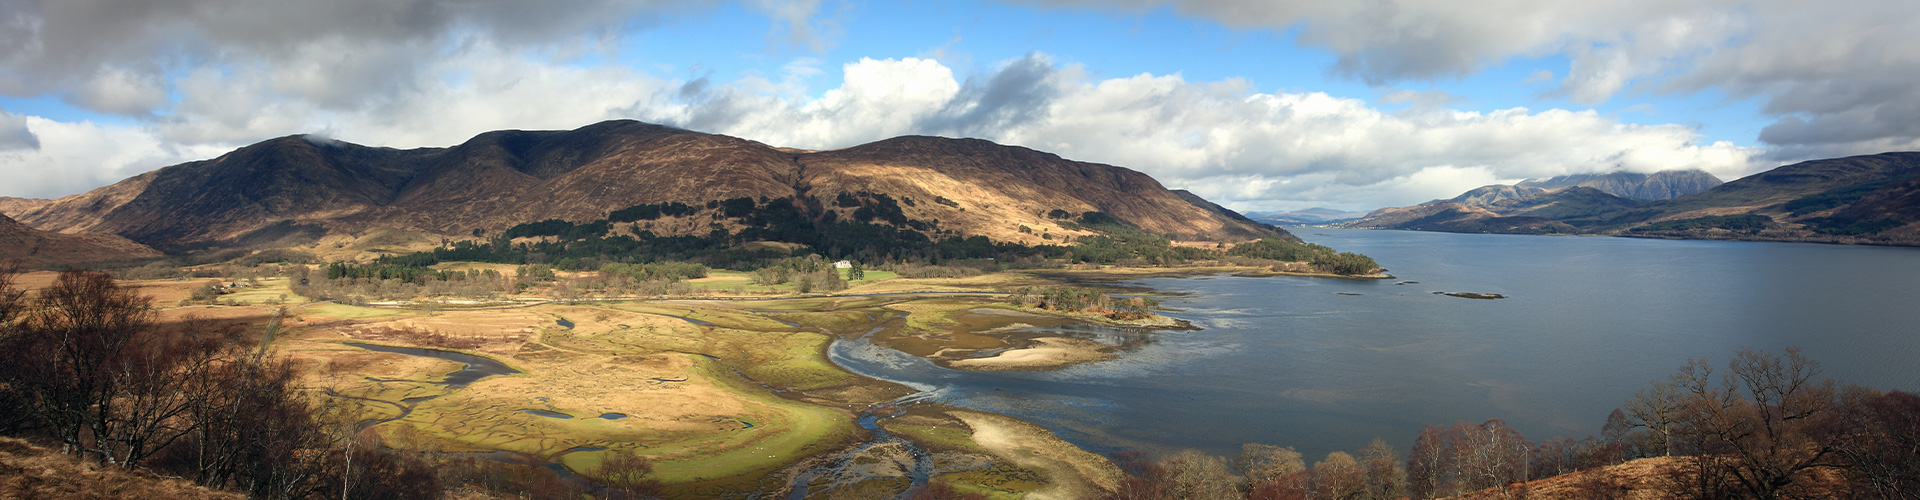 Scotland Family Holiday with Teenagers